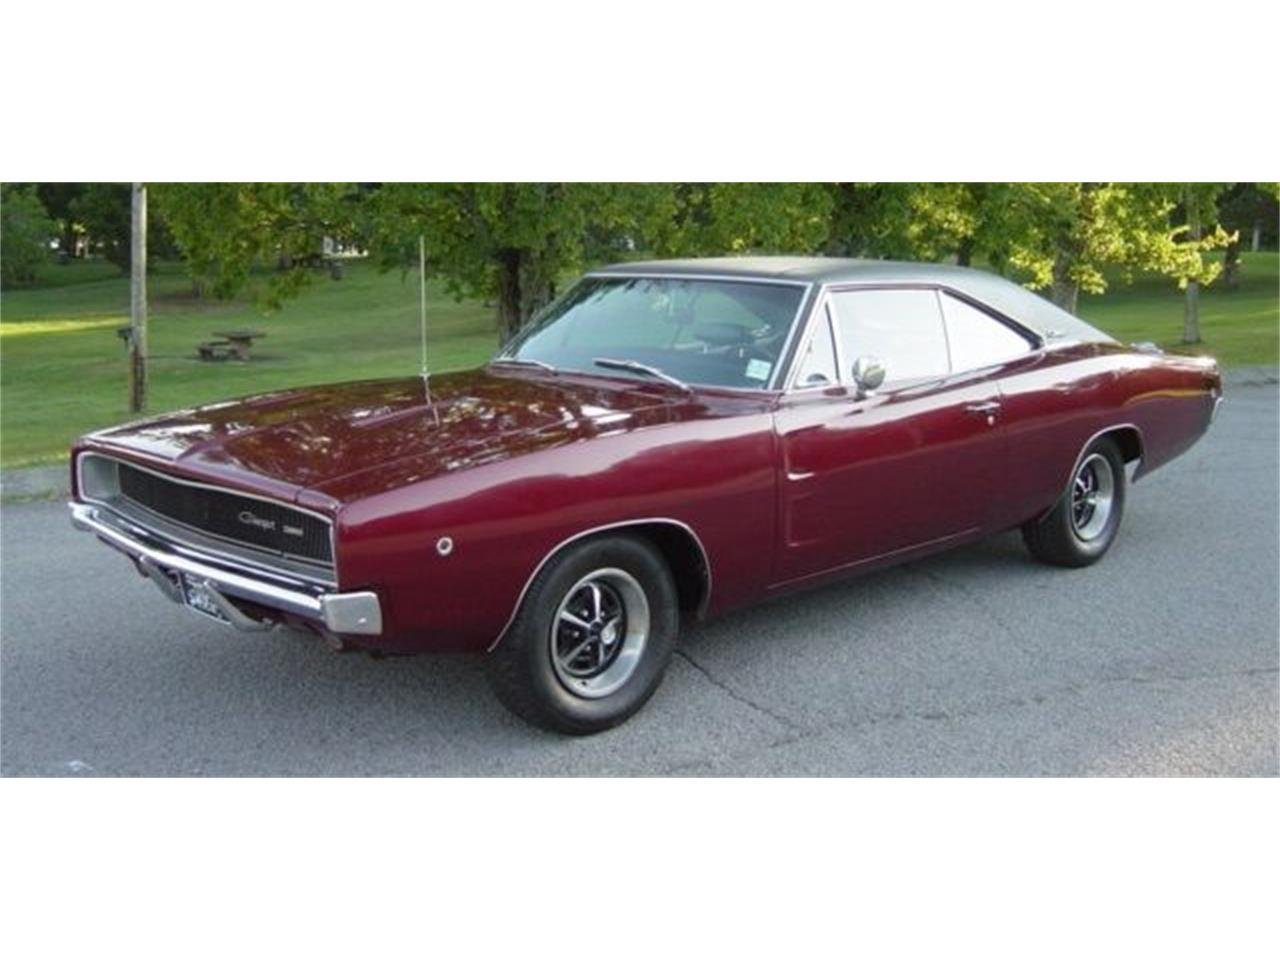 for sale 1968 dodge charger in hendersonville, tennessee cars - hendersonville, tn at geebo